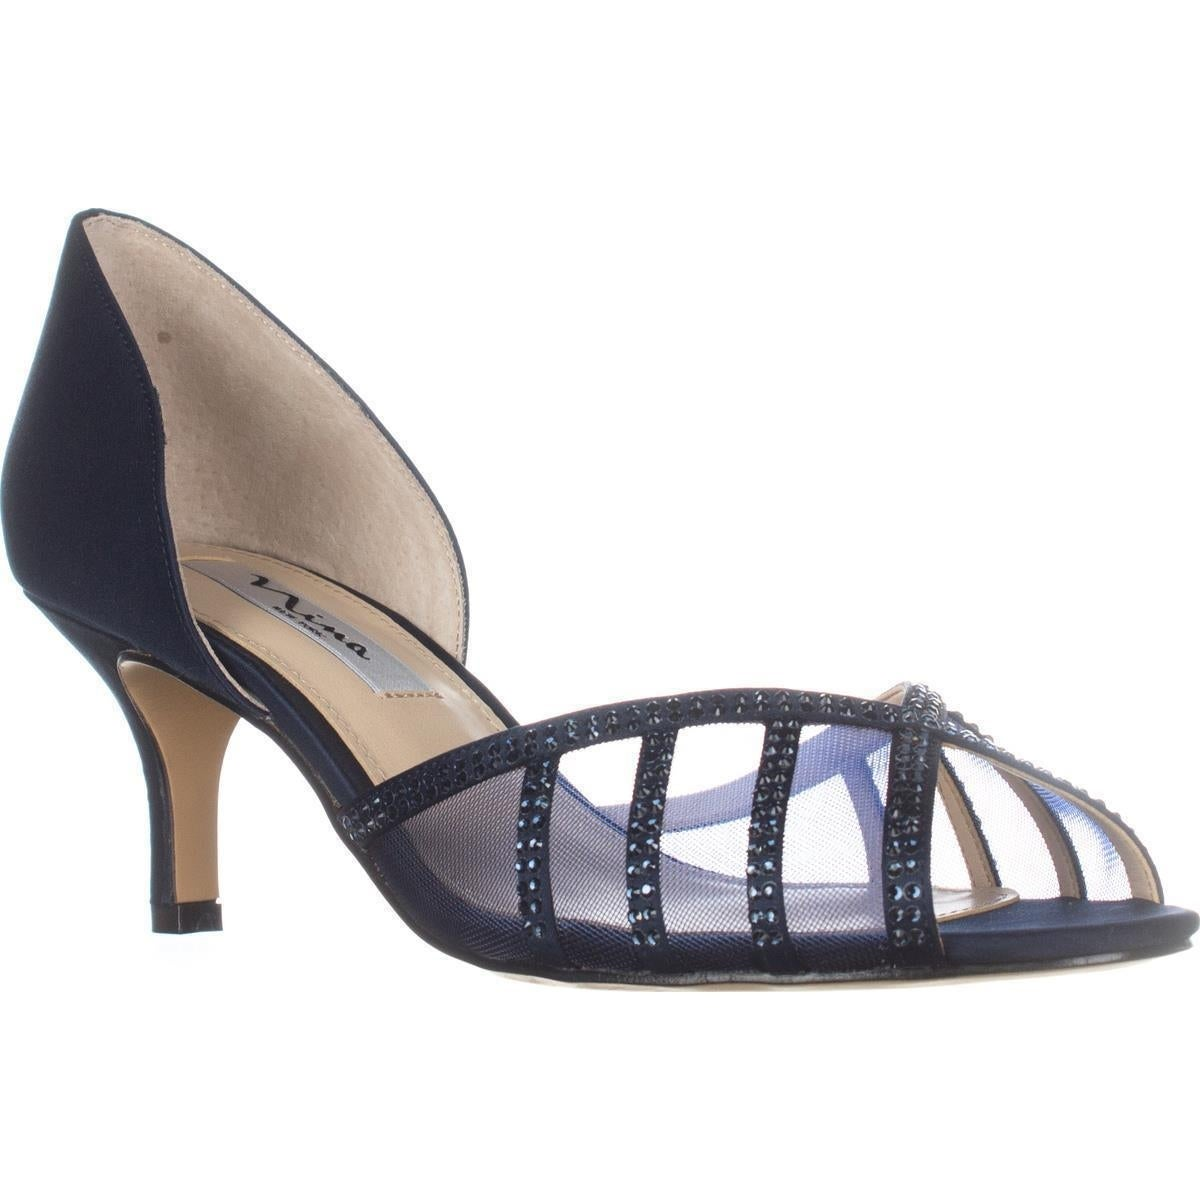 55a89df708a Nina Shoes | Shop our Best Clothing & Shoes Deals Online at Overstock